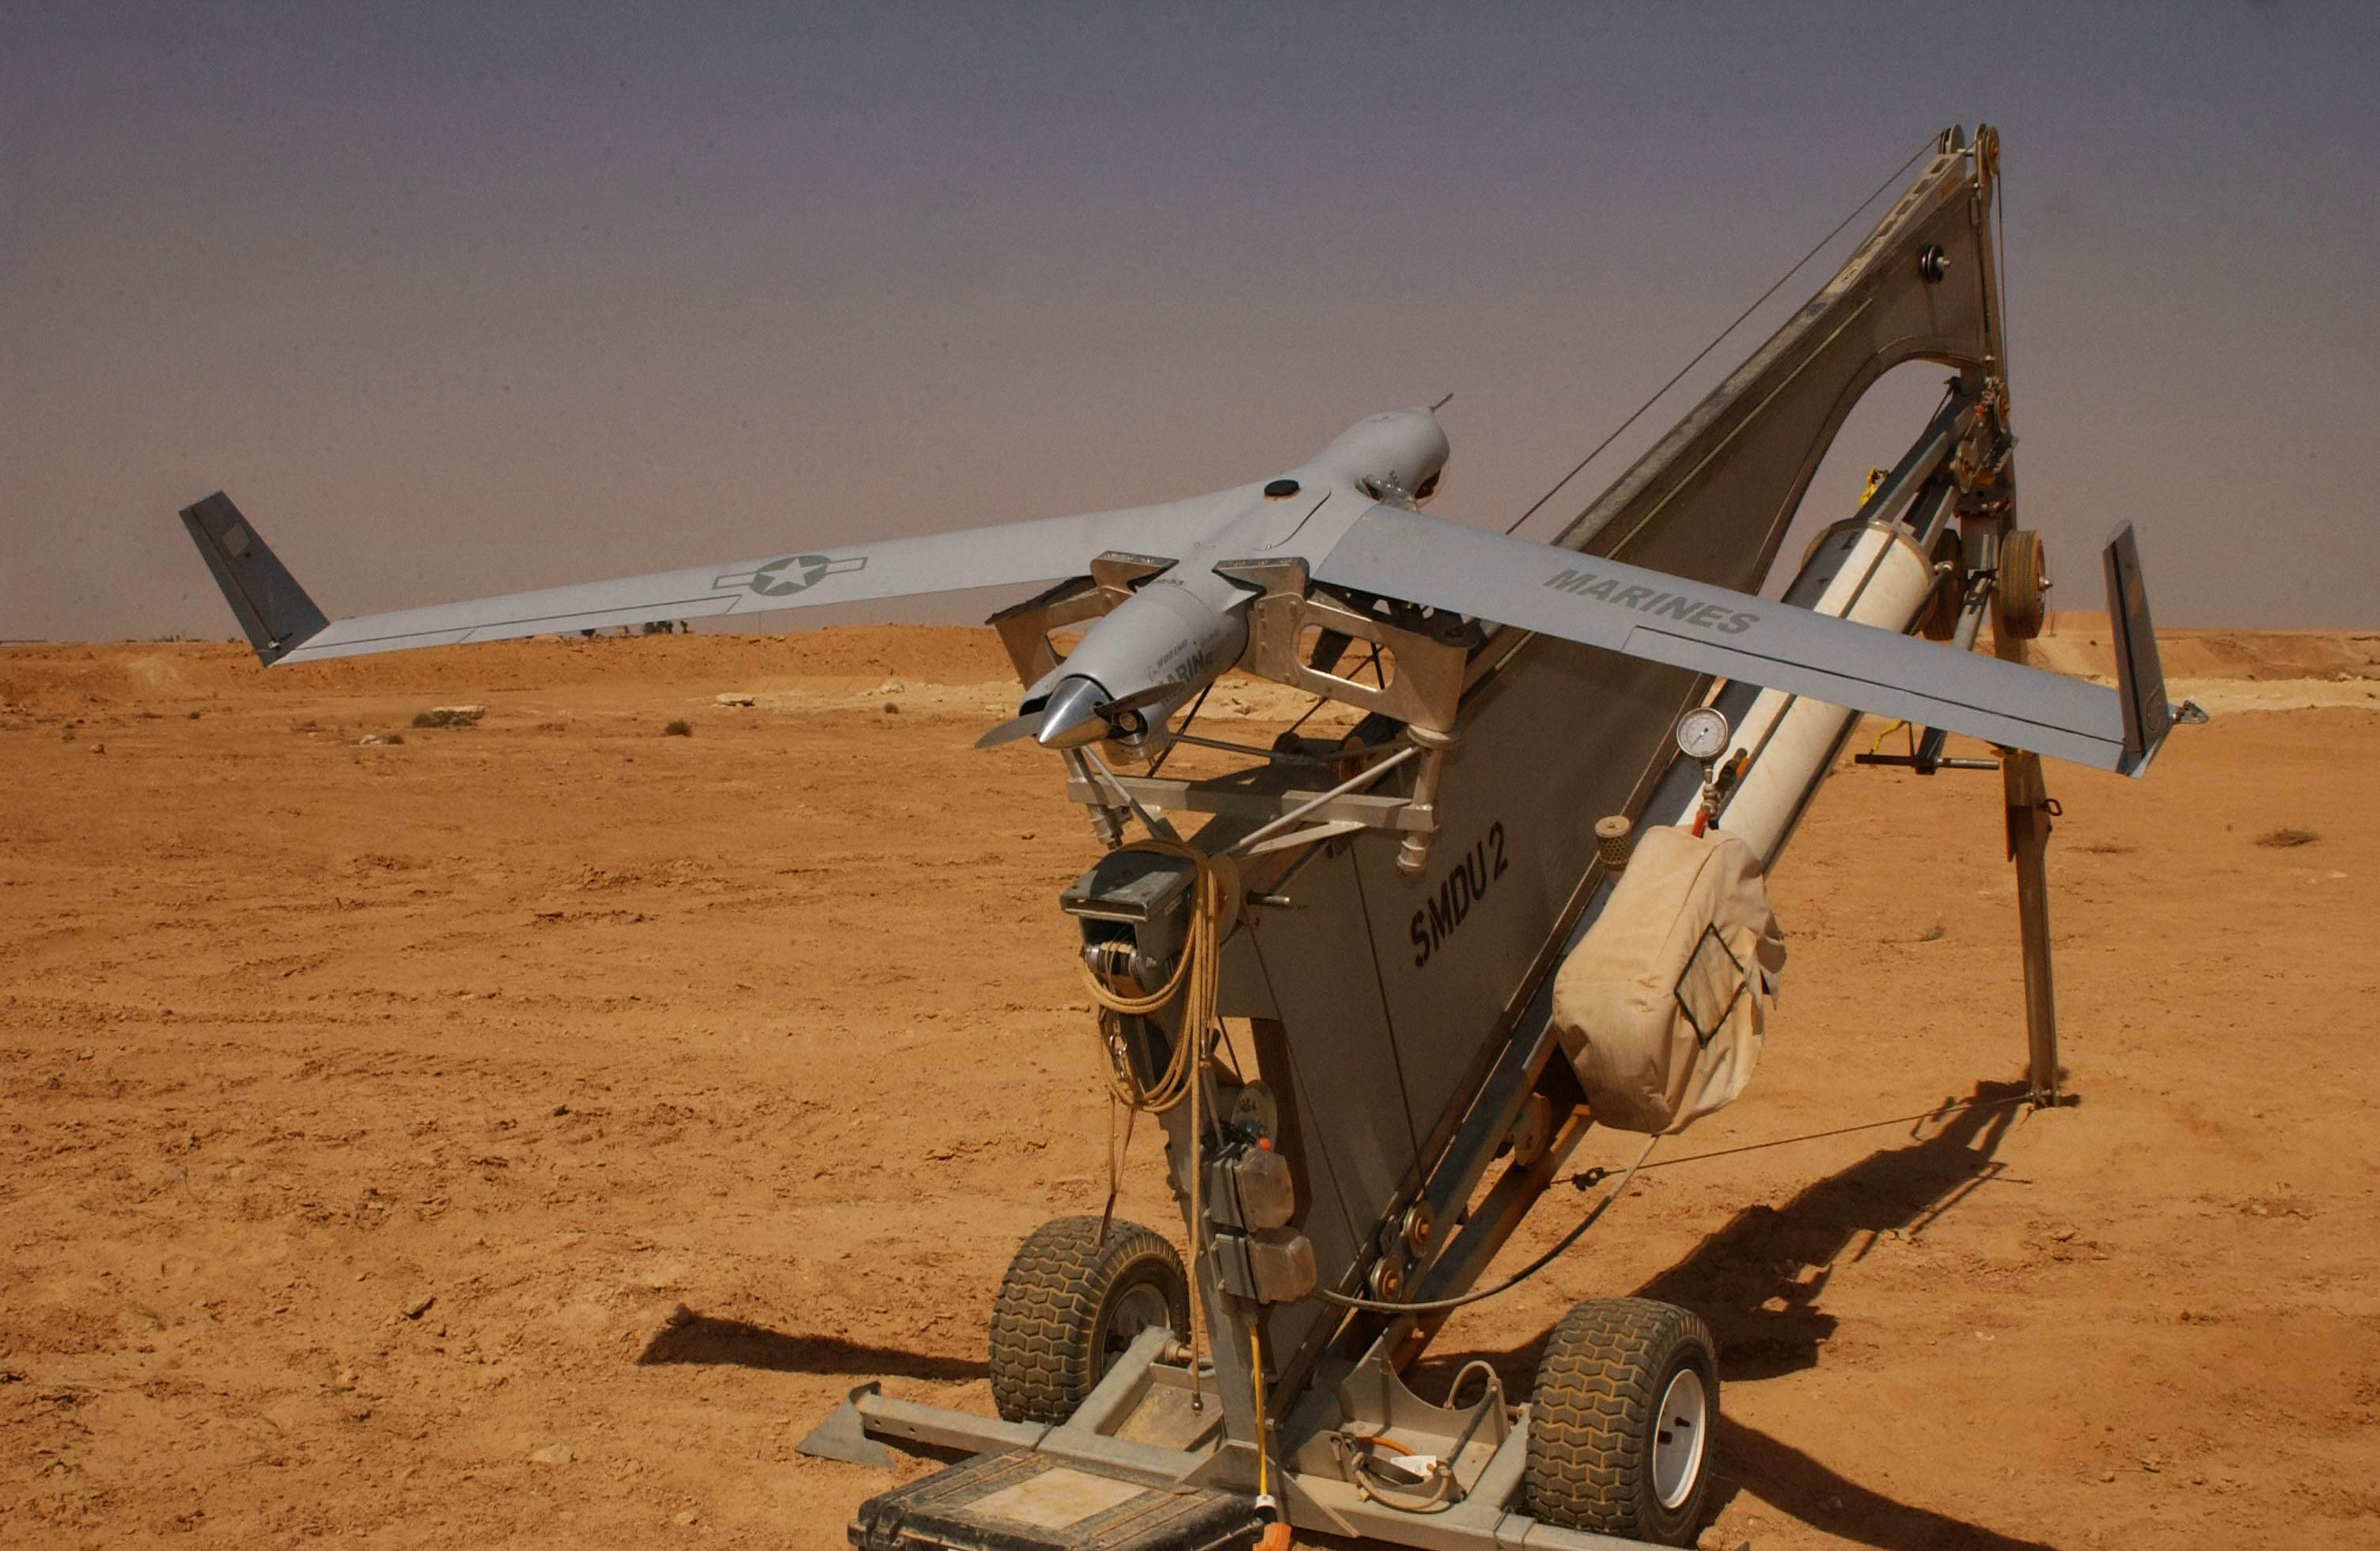 ScanEagle UAV catapult launcher 2005 04 16 Drone Conference Comes to NYC